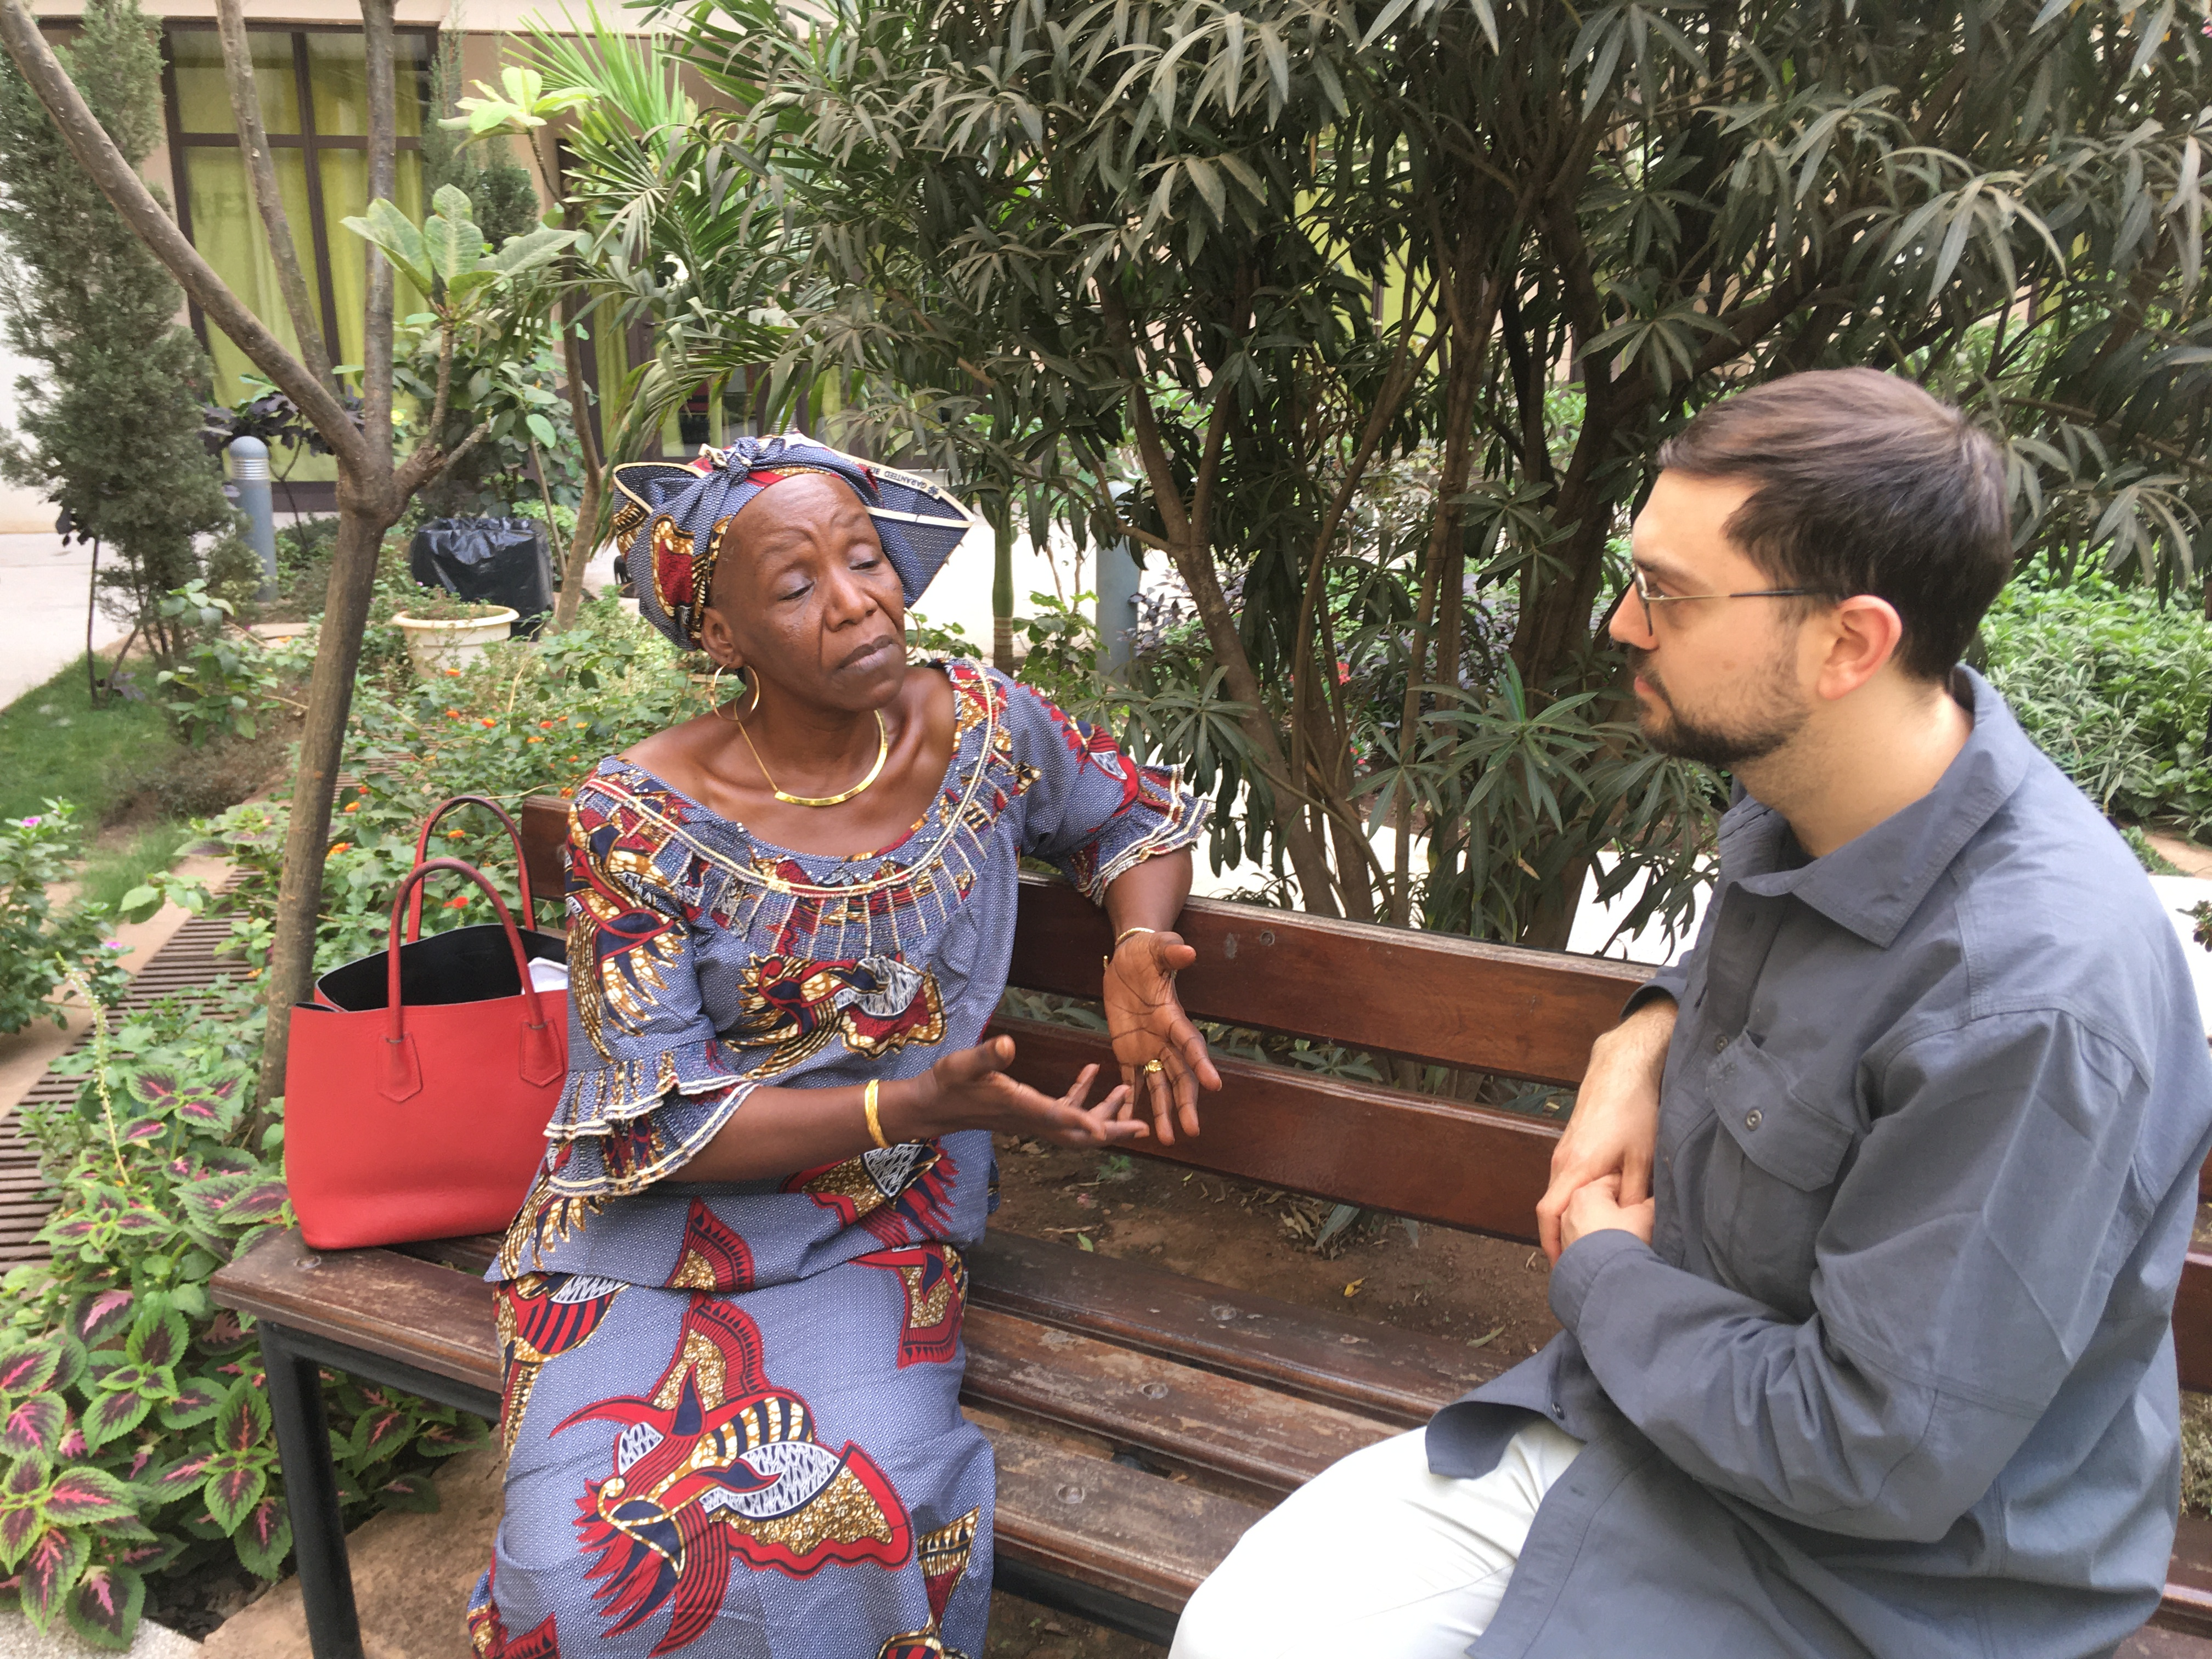 WJP field researcher and ACLS-Mellon Public Fellow Joe Haley converses with Djingarey Maïga, unapologetic feminist and human rights educator.